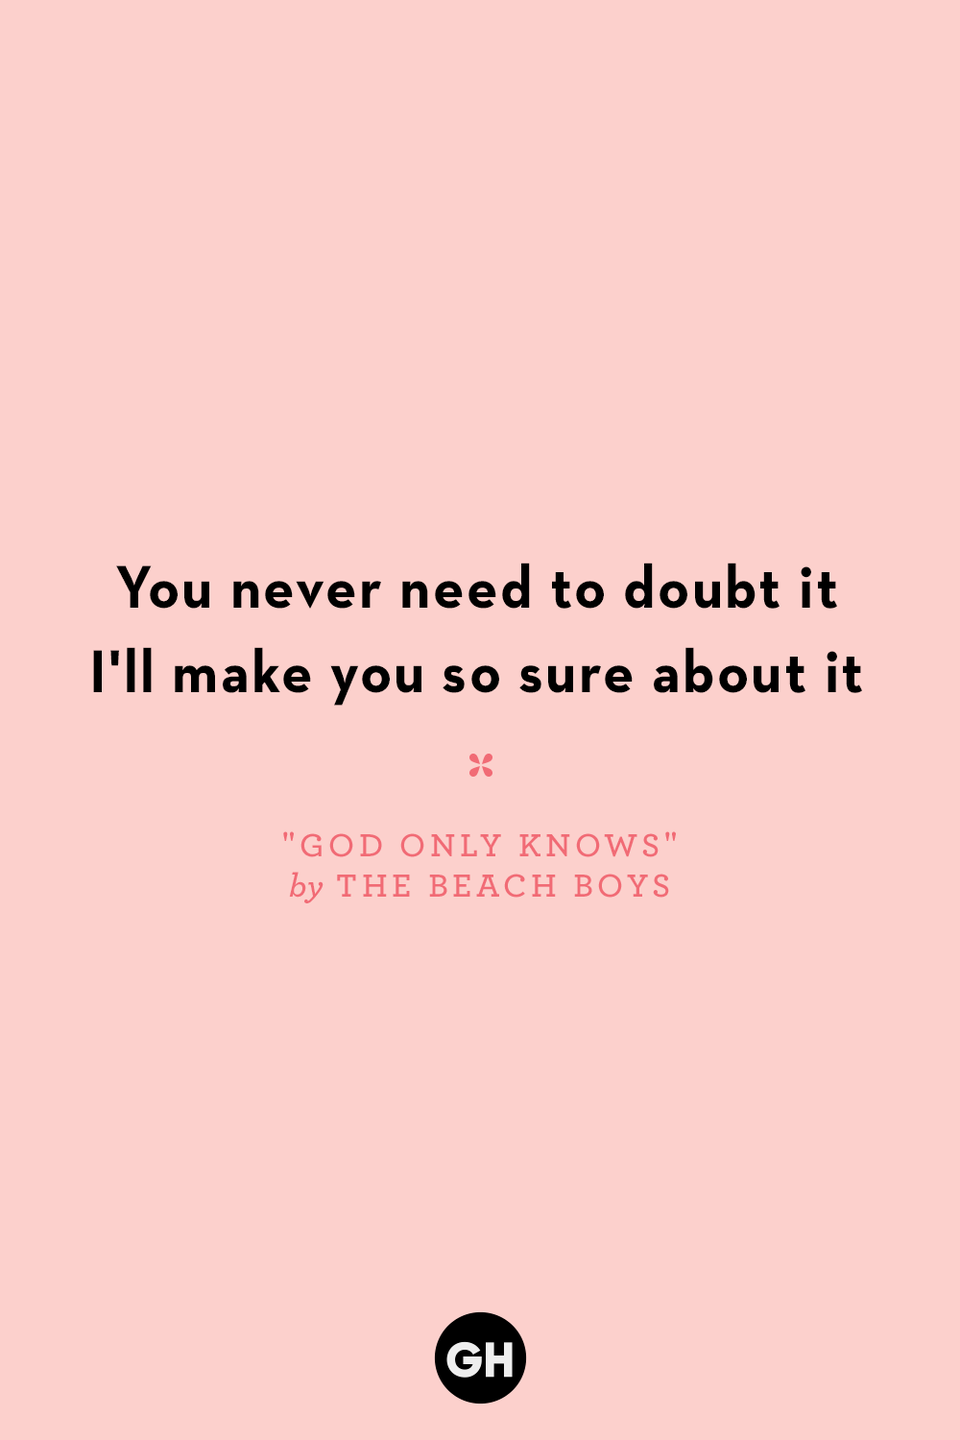 <p>You never need to doubt it</p><p>I'll make you so sure about it</p>